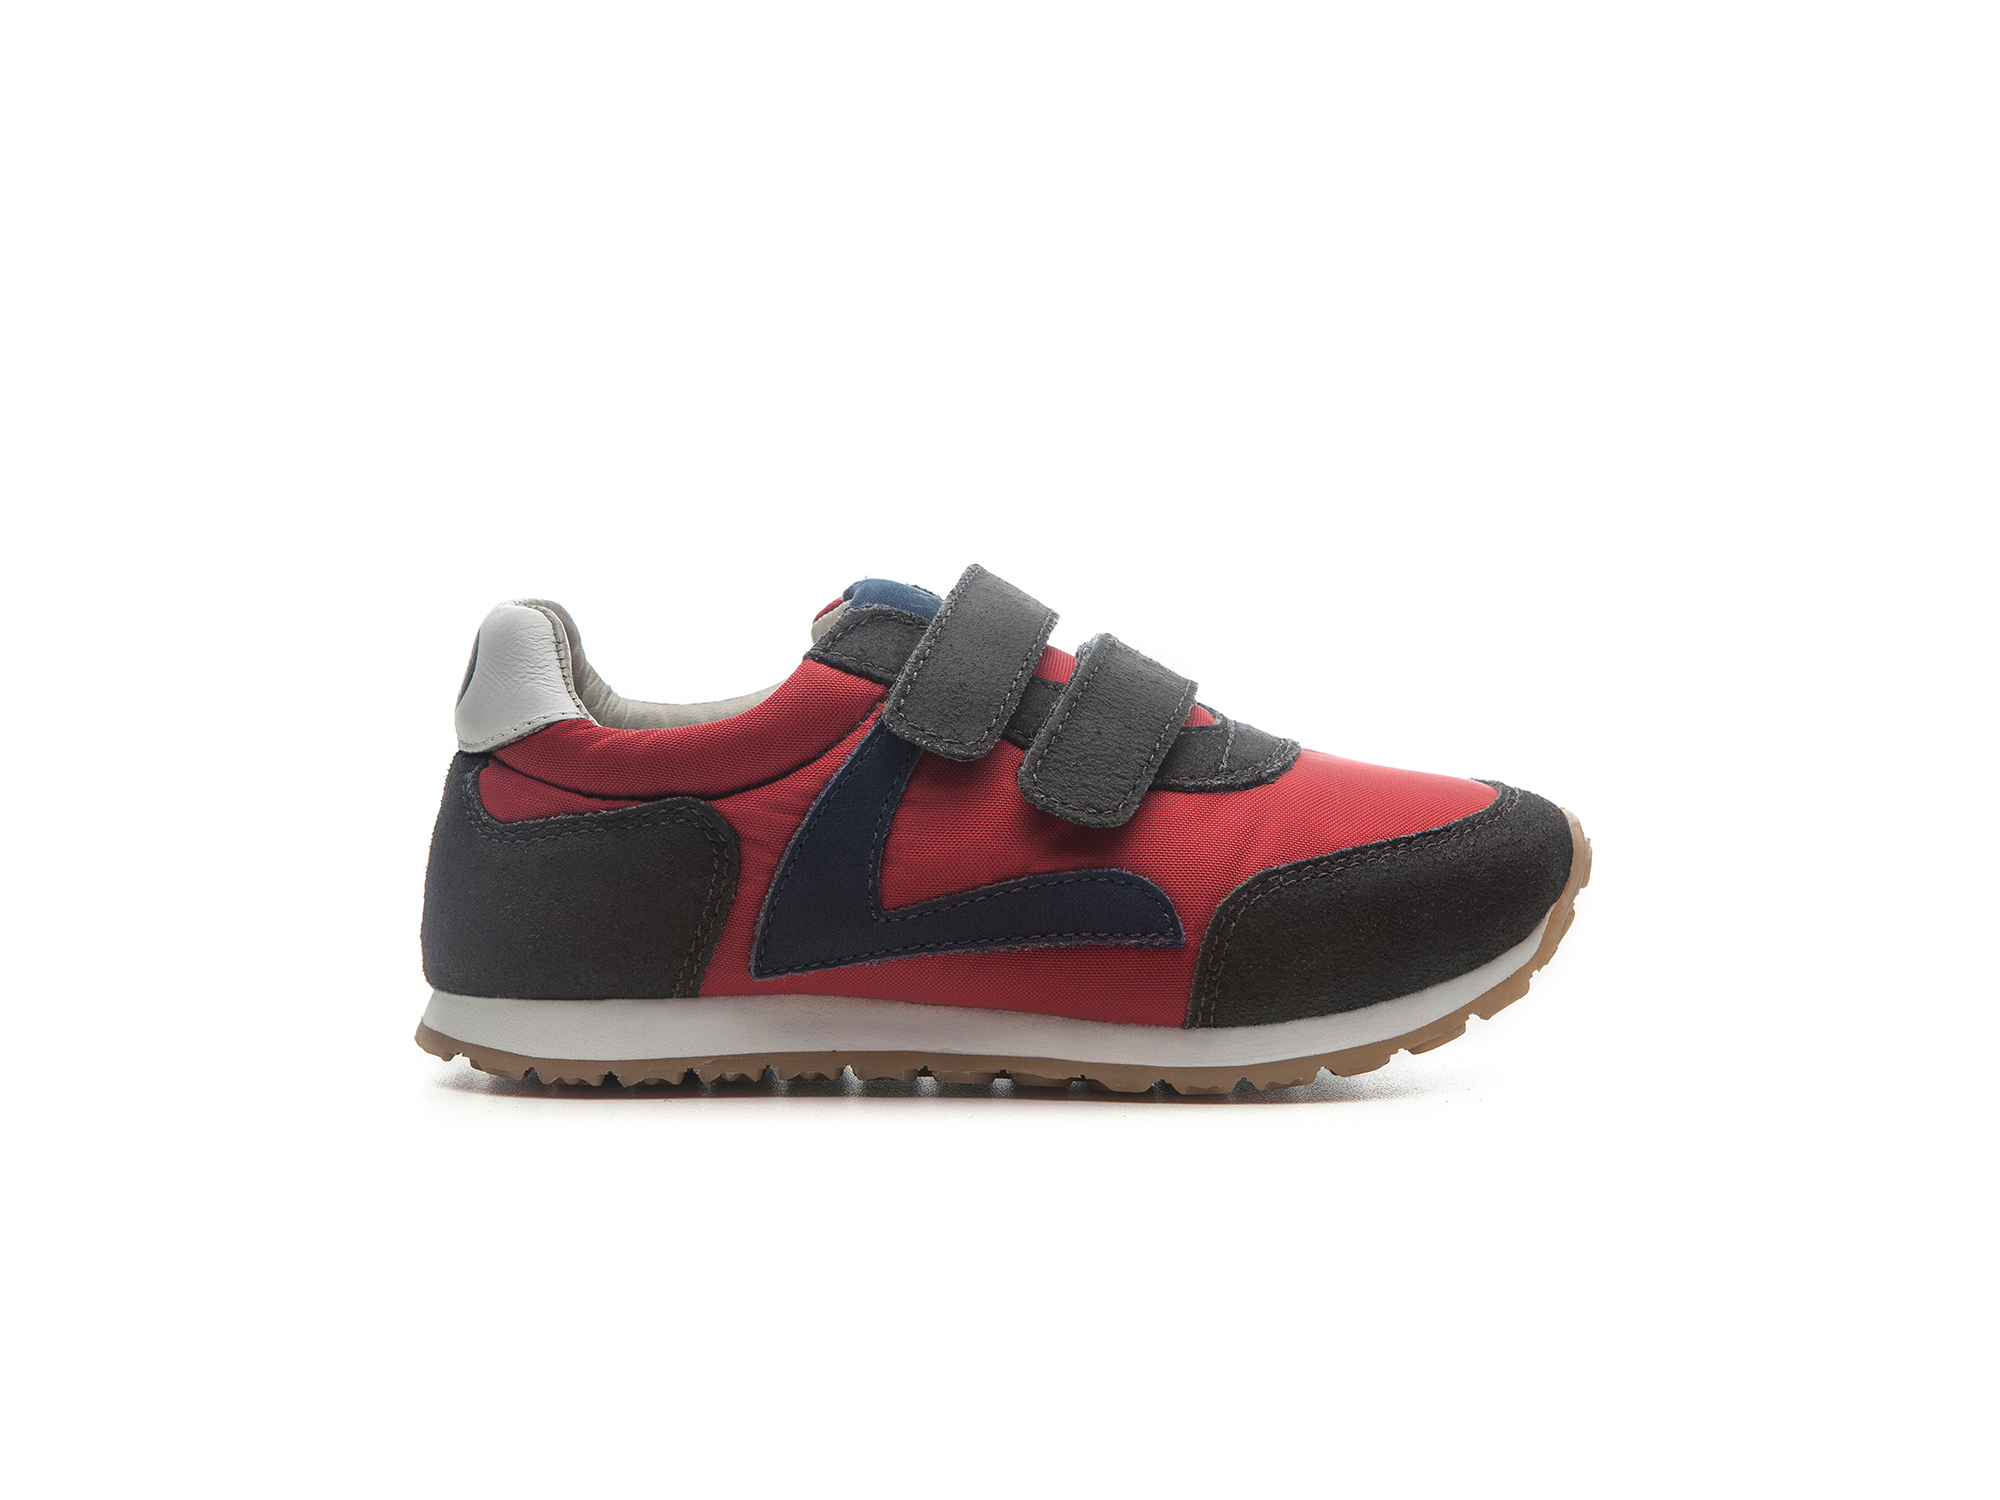 Tênis Little Jump Red Nylon/ Brushed Ash  Toddler 2 à 4 anos - 0